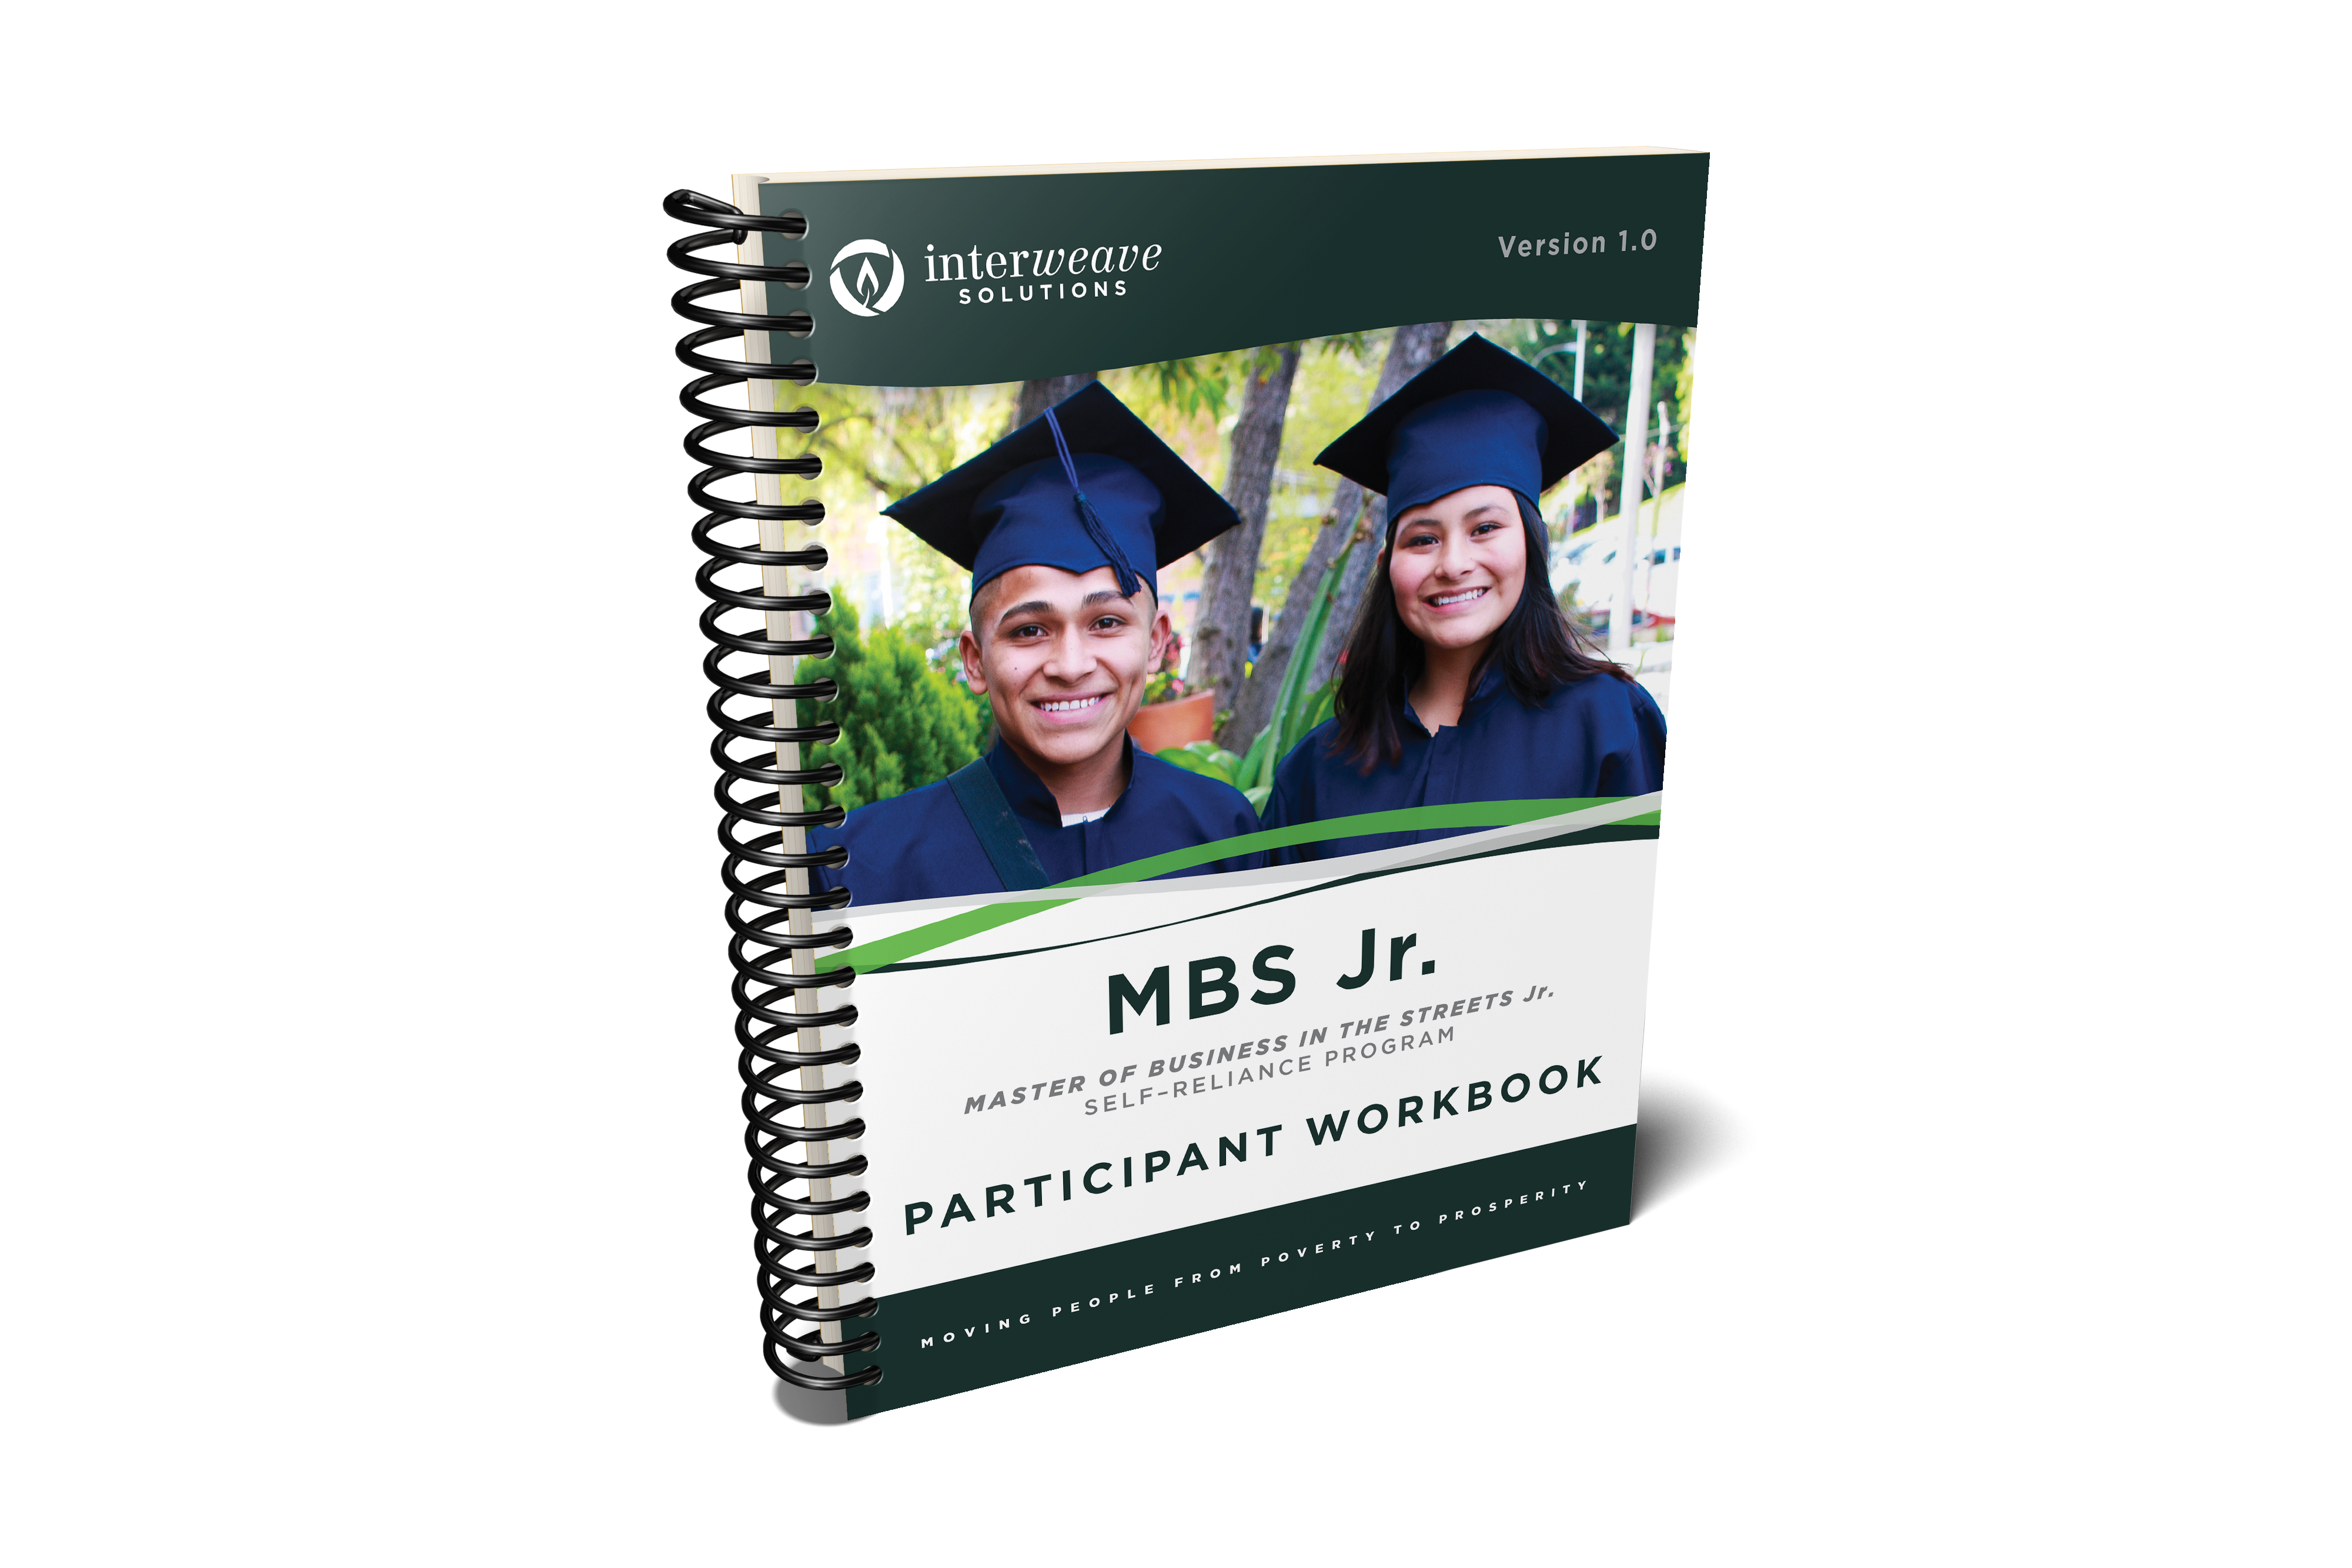 To download the MBS Jr. Participant Workbook, please click here:MBS Jr. Participant Workbook